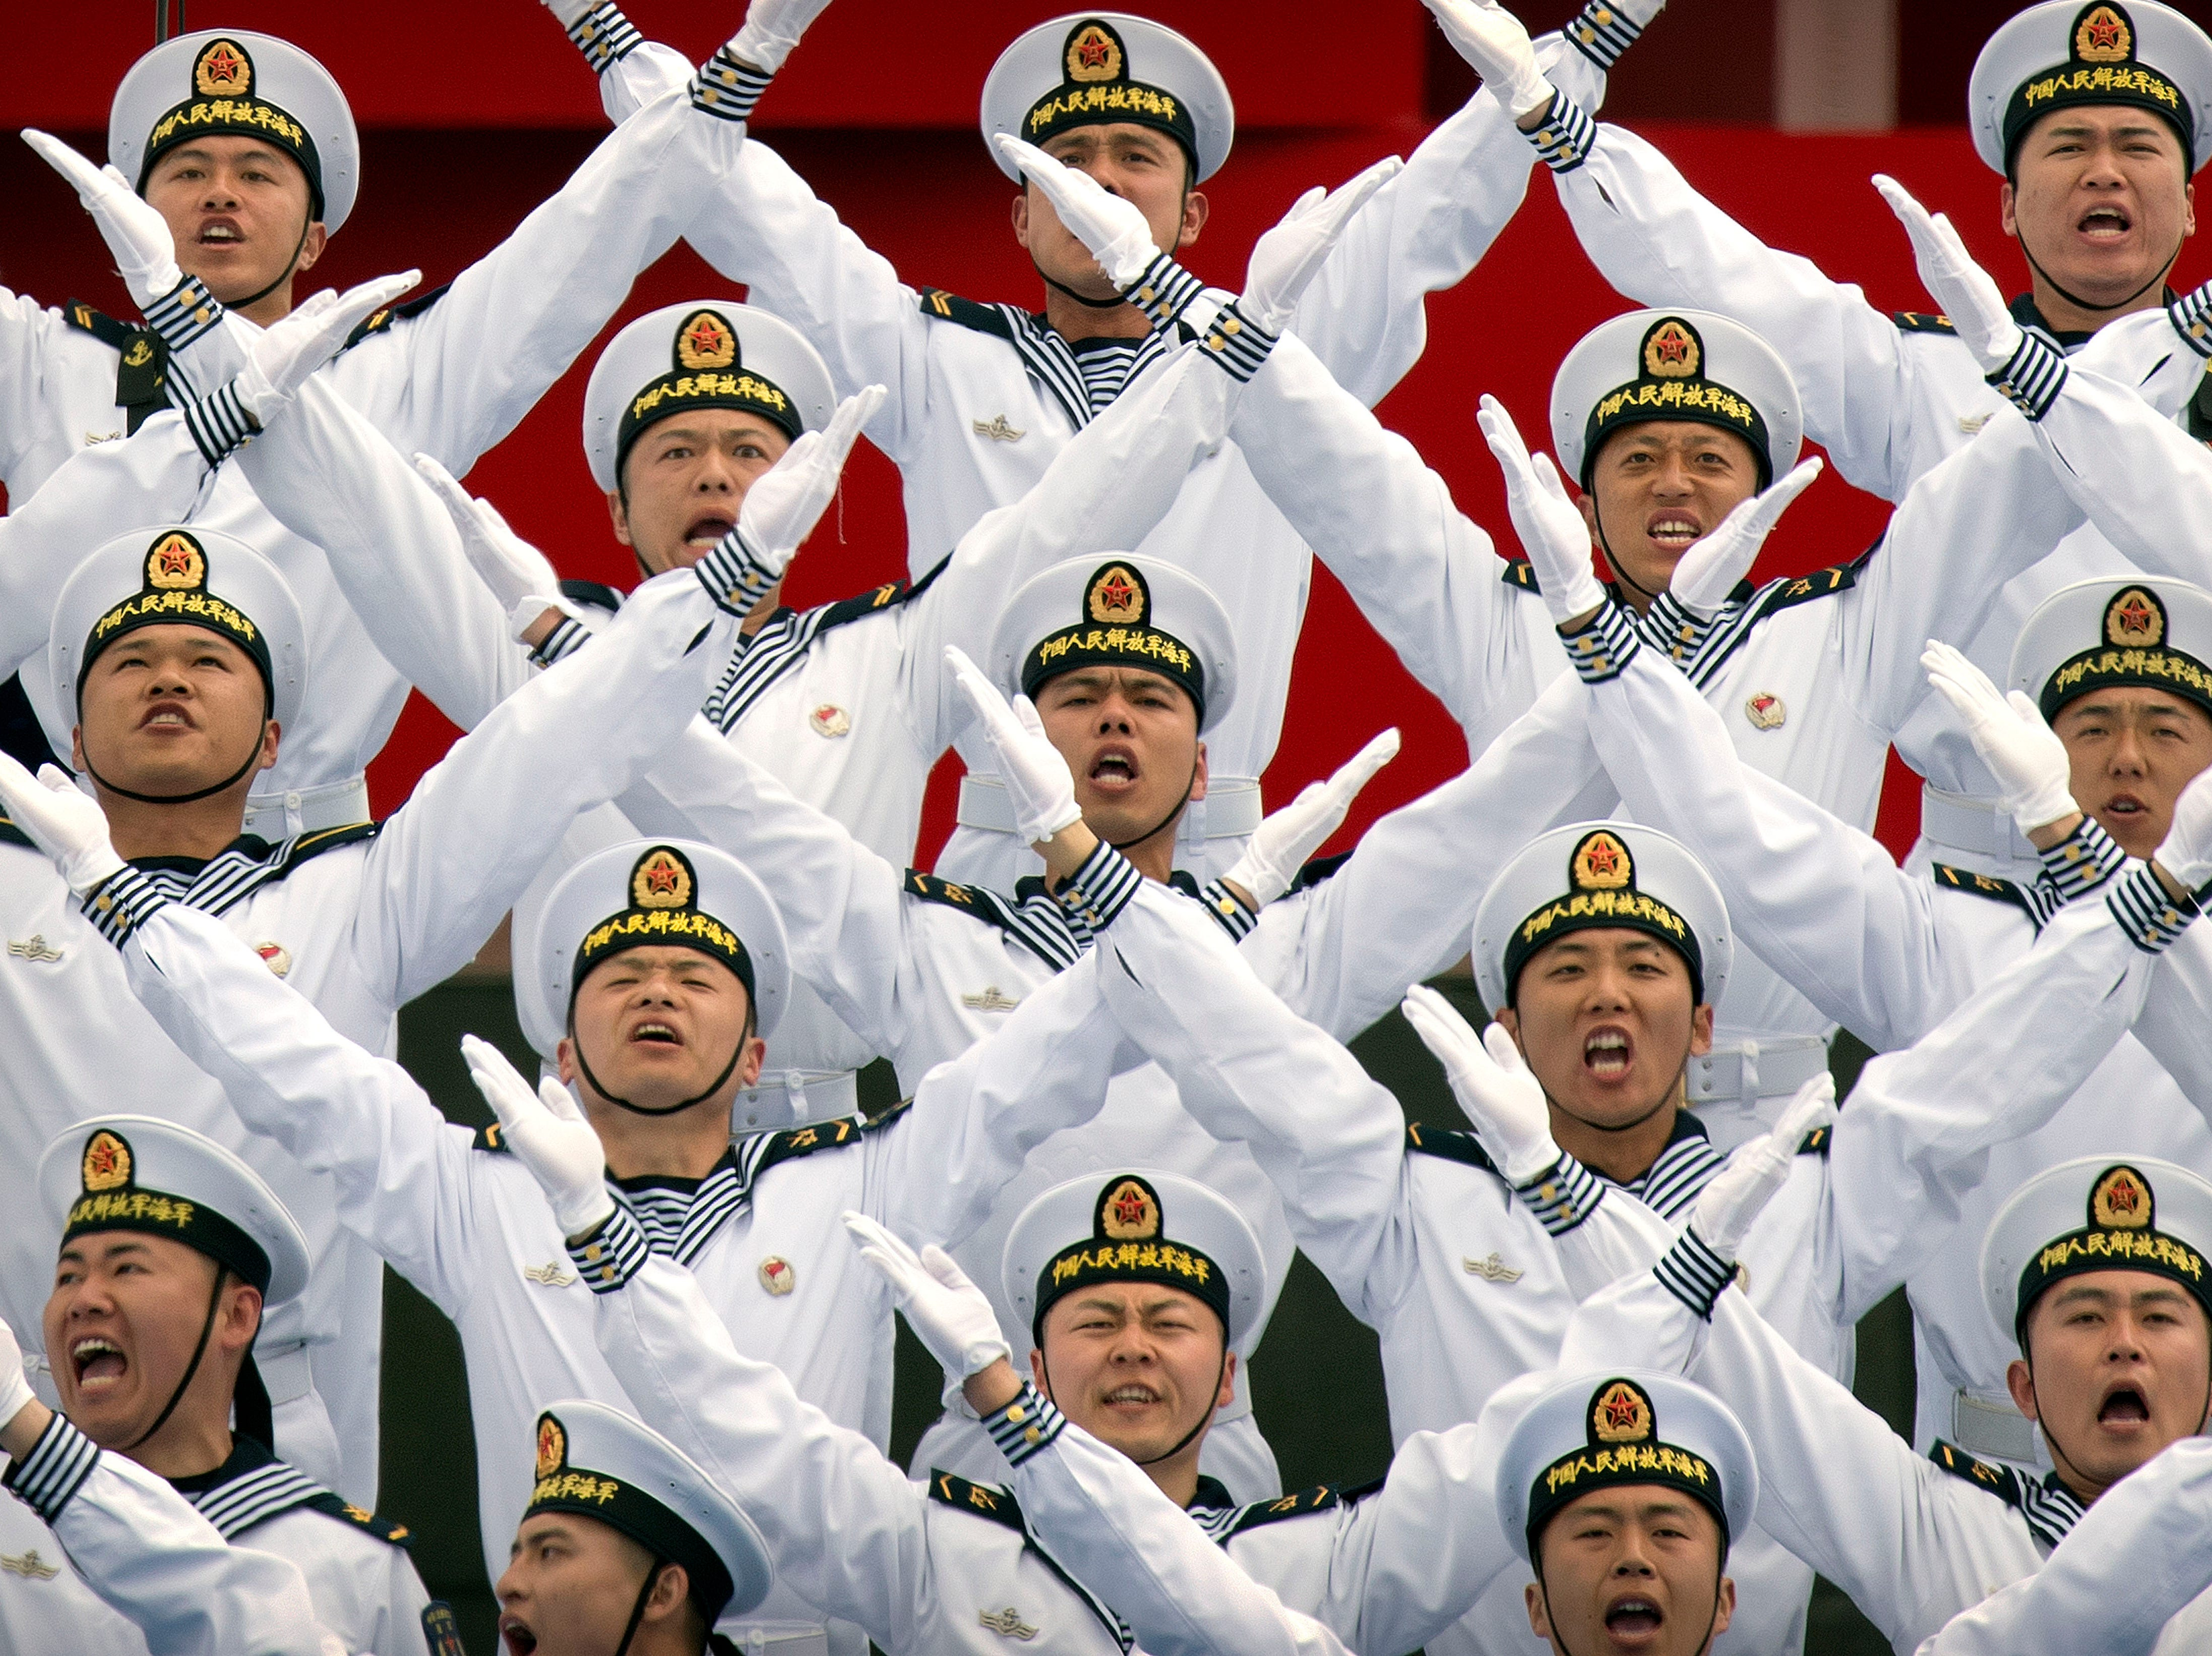 A Chinese navy chorus performs during a concert featuring Chinese and foreign military bands in Qingdao, Monday, April 22, 2019. Ships from Chinese and foreign navies have gathered in Qingdao for events this week, including a naval parade, to mark the 70th anniversary of the founding of the People's Liberation Army (PLA) Navy.